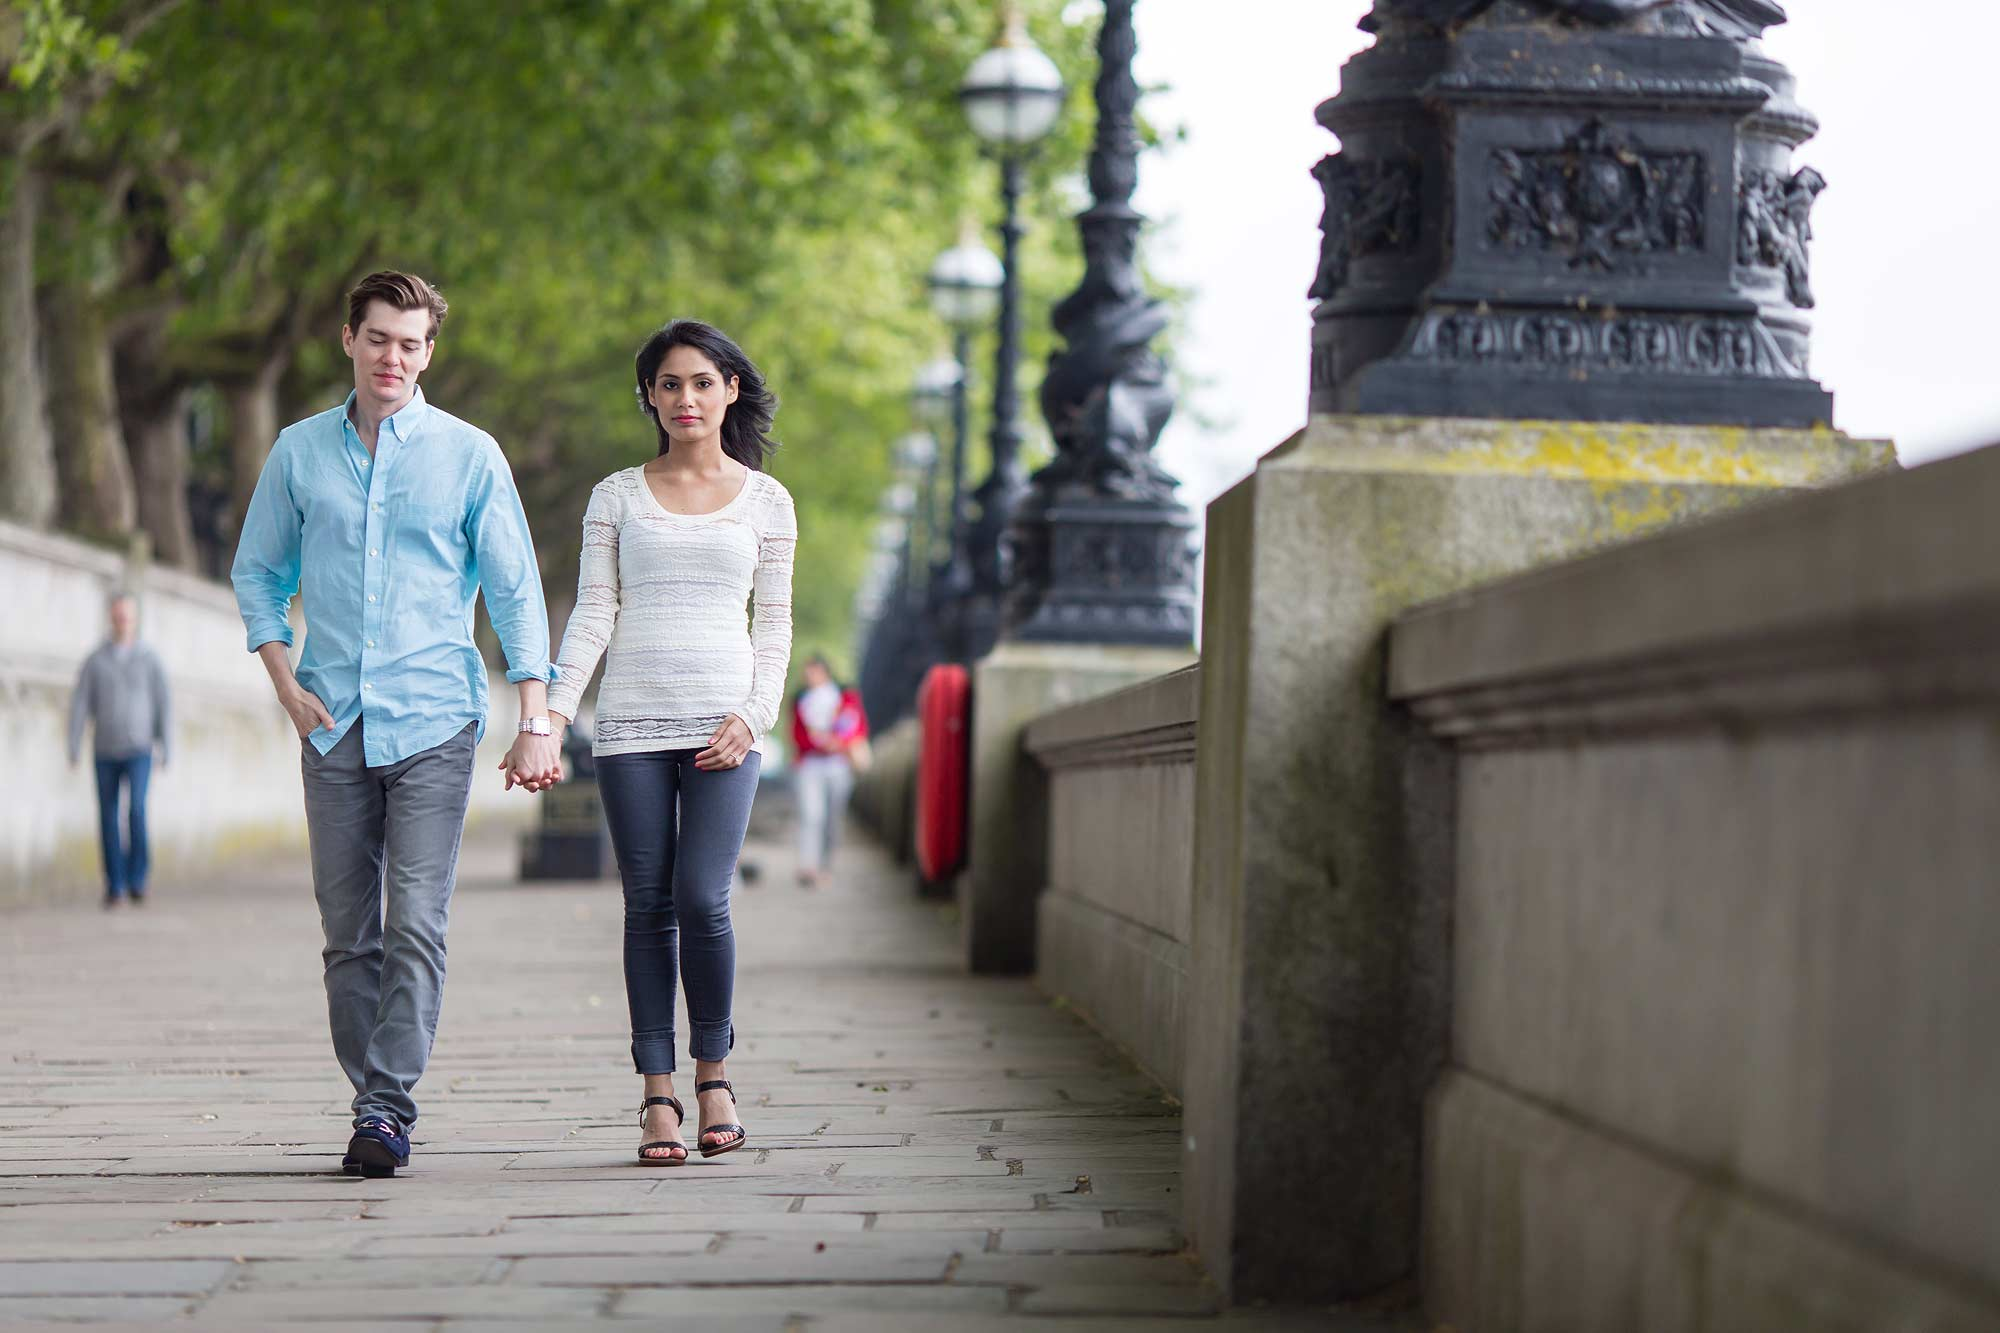 The hold hands and walk towards the camera on embankment